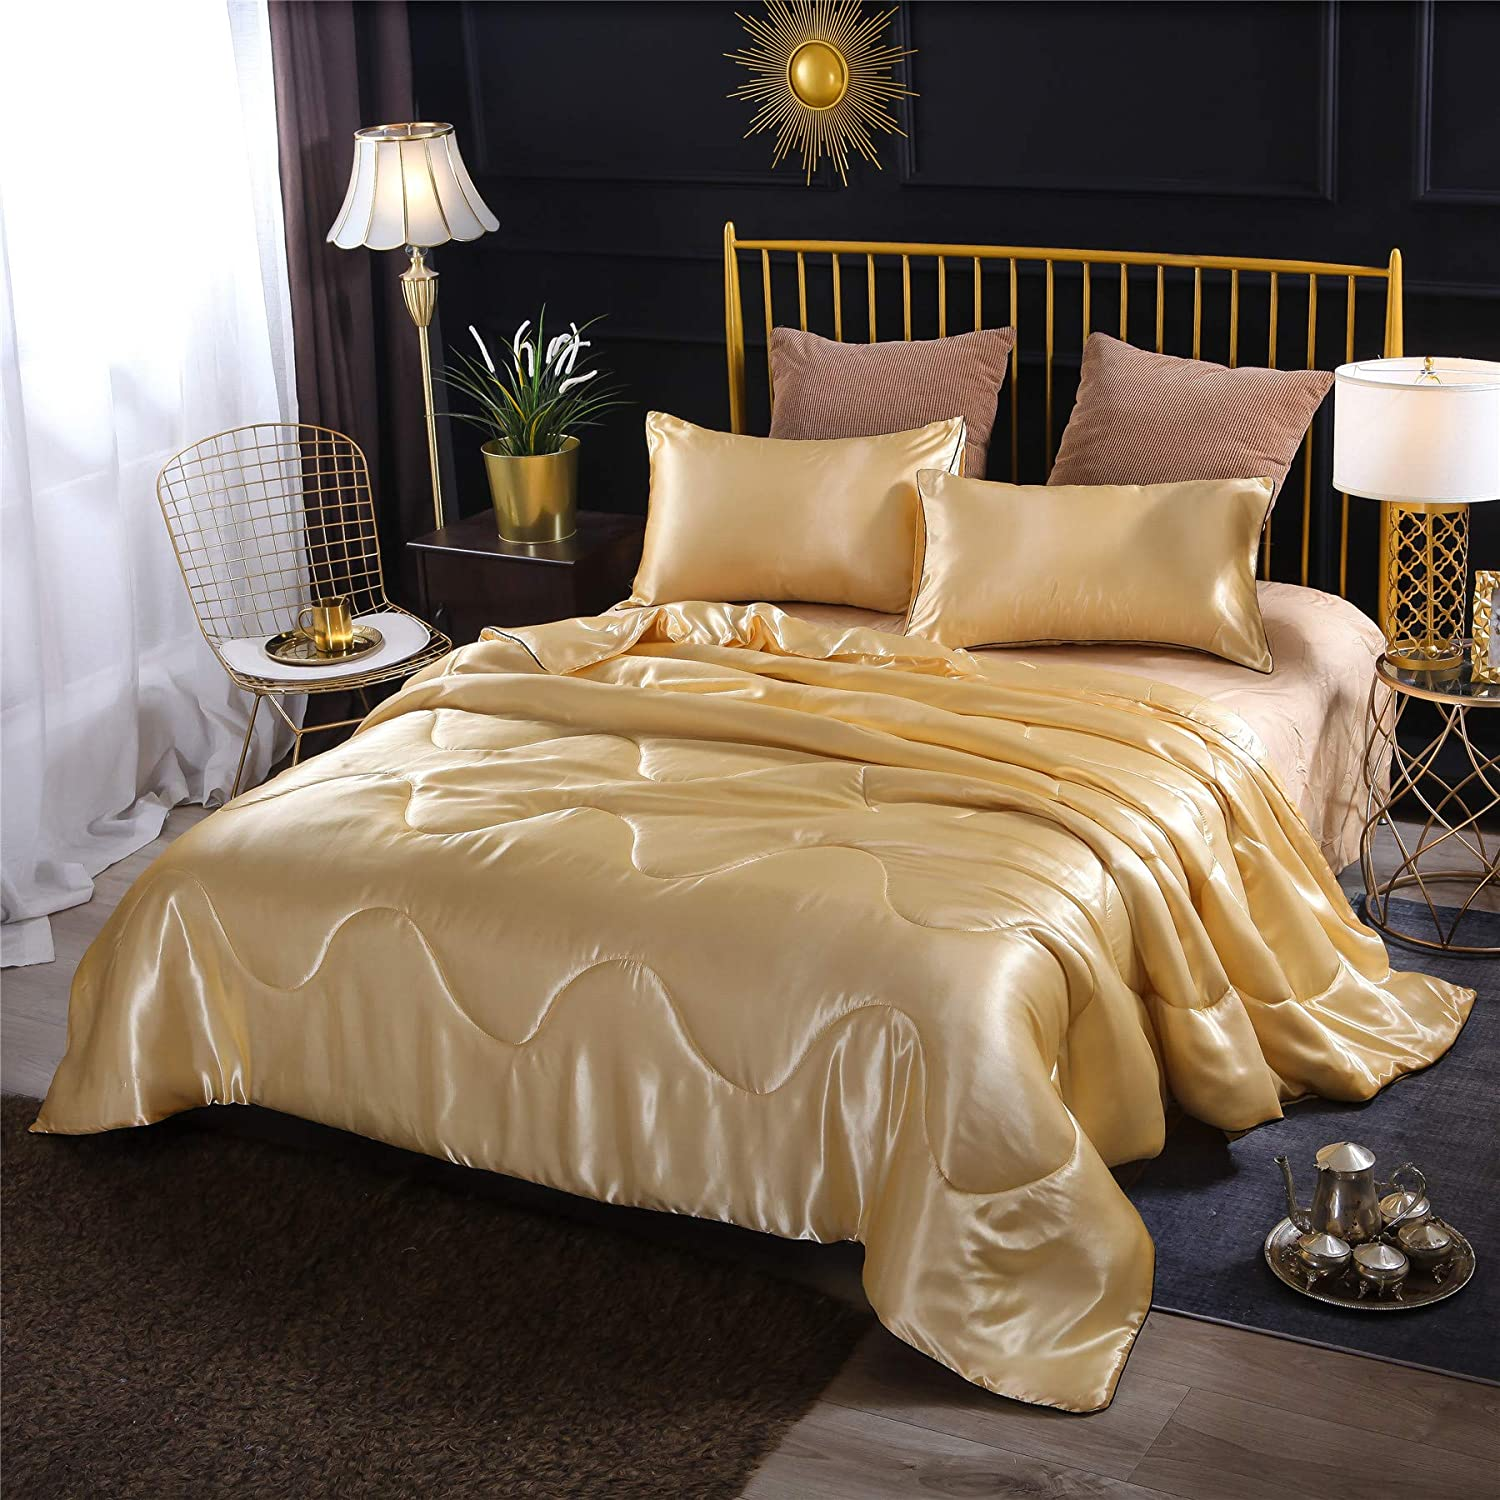 A Nice Night Satin Silky Soft Quilt Sexy Luxury Super Soft Microfiber Bedding Comforter Set Full/Queen, Light Weighted (Gold, Queen(88-by-88-inches))